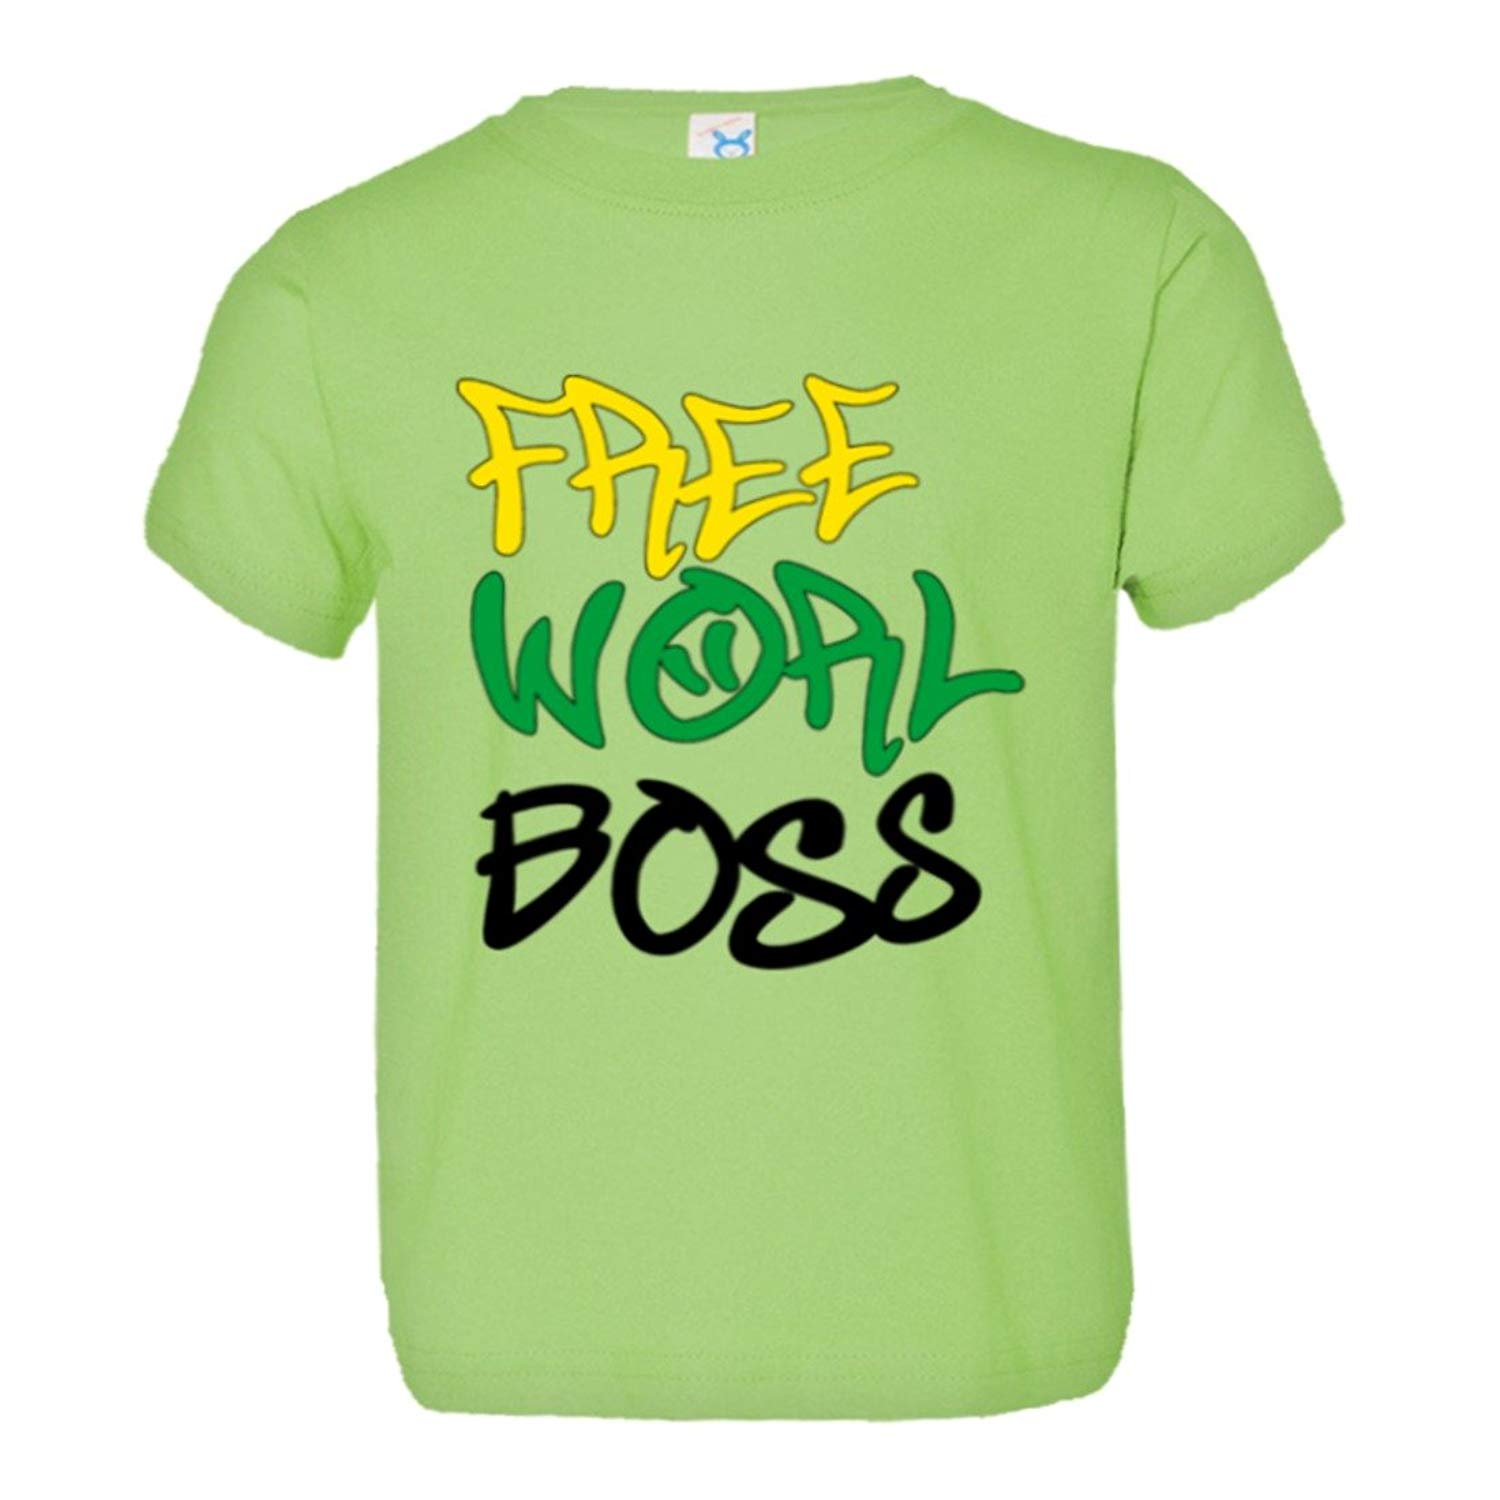 7511accff Get Quotations · PleaseMeTees Toddler Free Worl Boss Jamaican Flag Kartel  Dance Hall HQ Tee Shirt